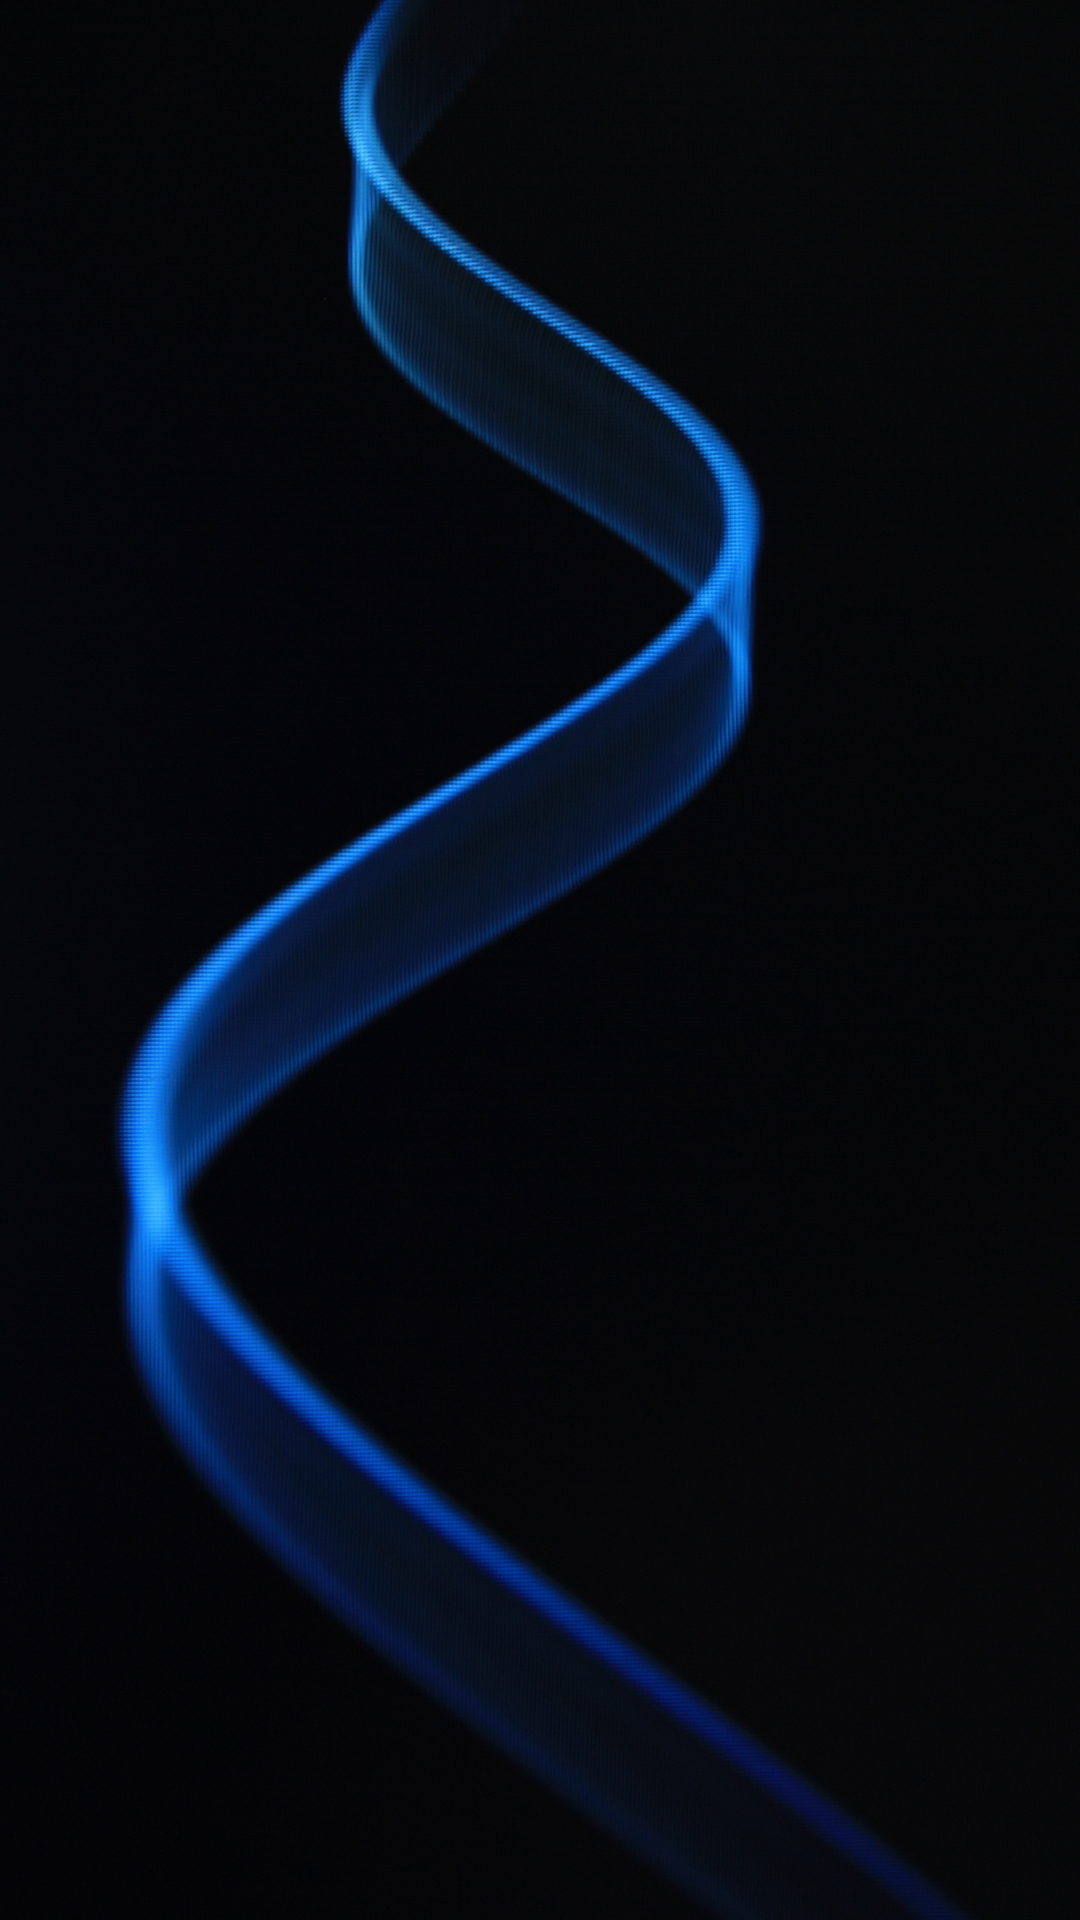 Samsung Galaxy Note 3 Wallpapers: Blue S-Wave Android ...